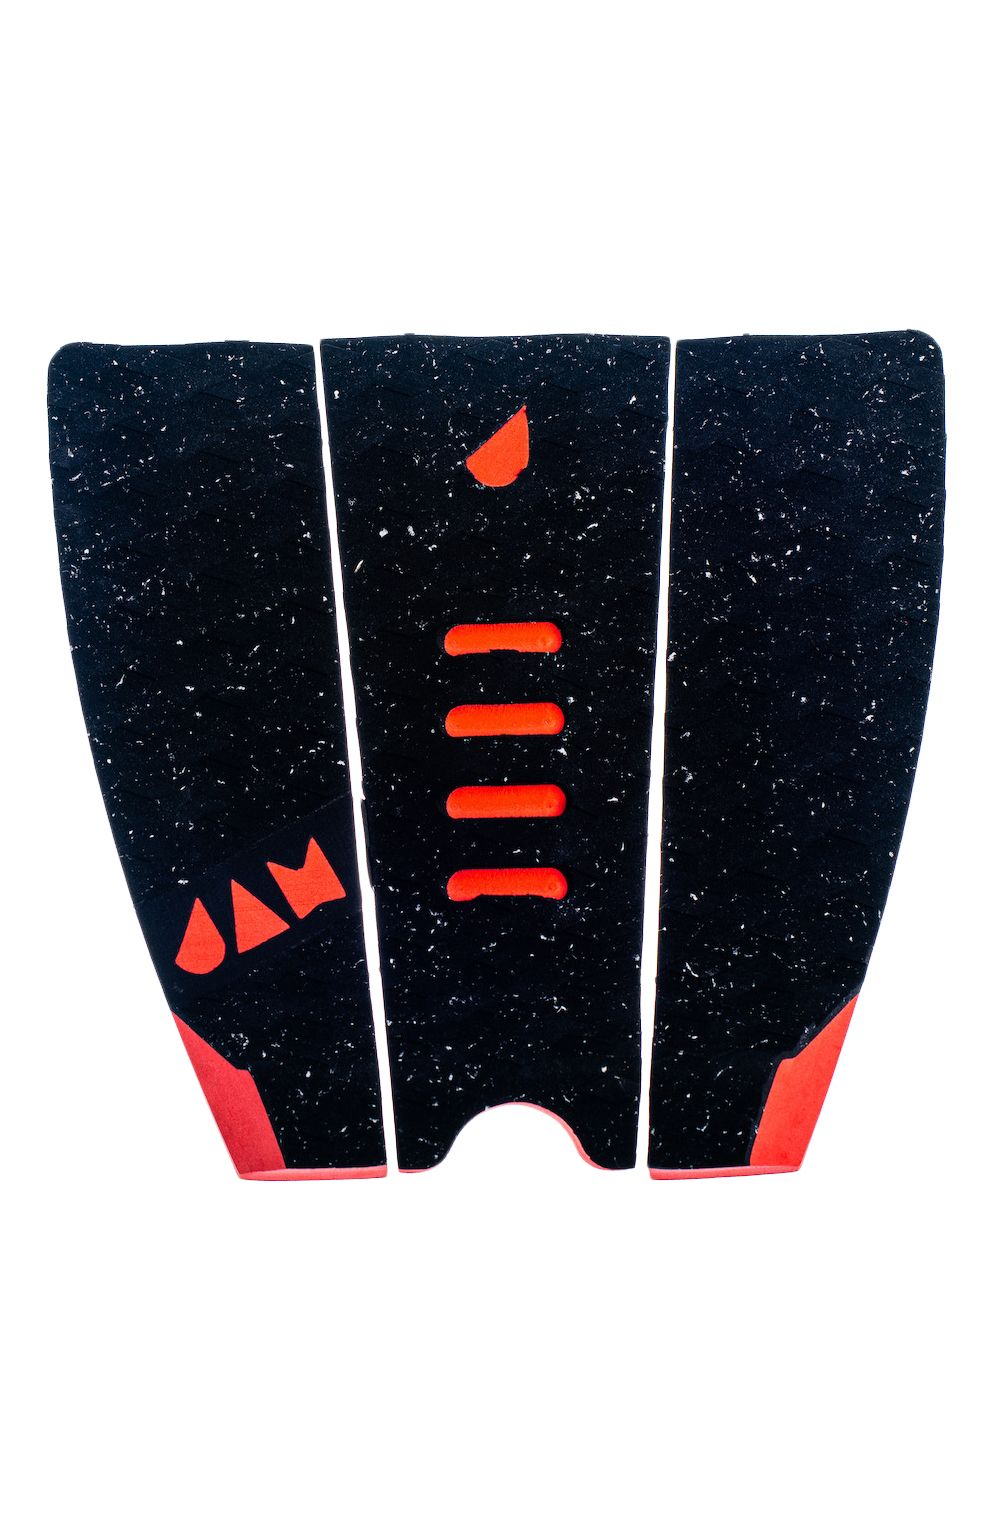 Jam Deck MINI-ME SMALL 3 PIECE TRACTION PAD Black/Red Dotted